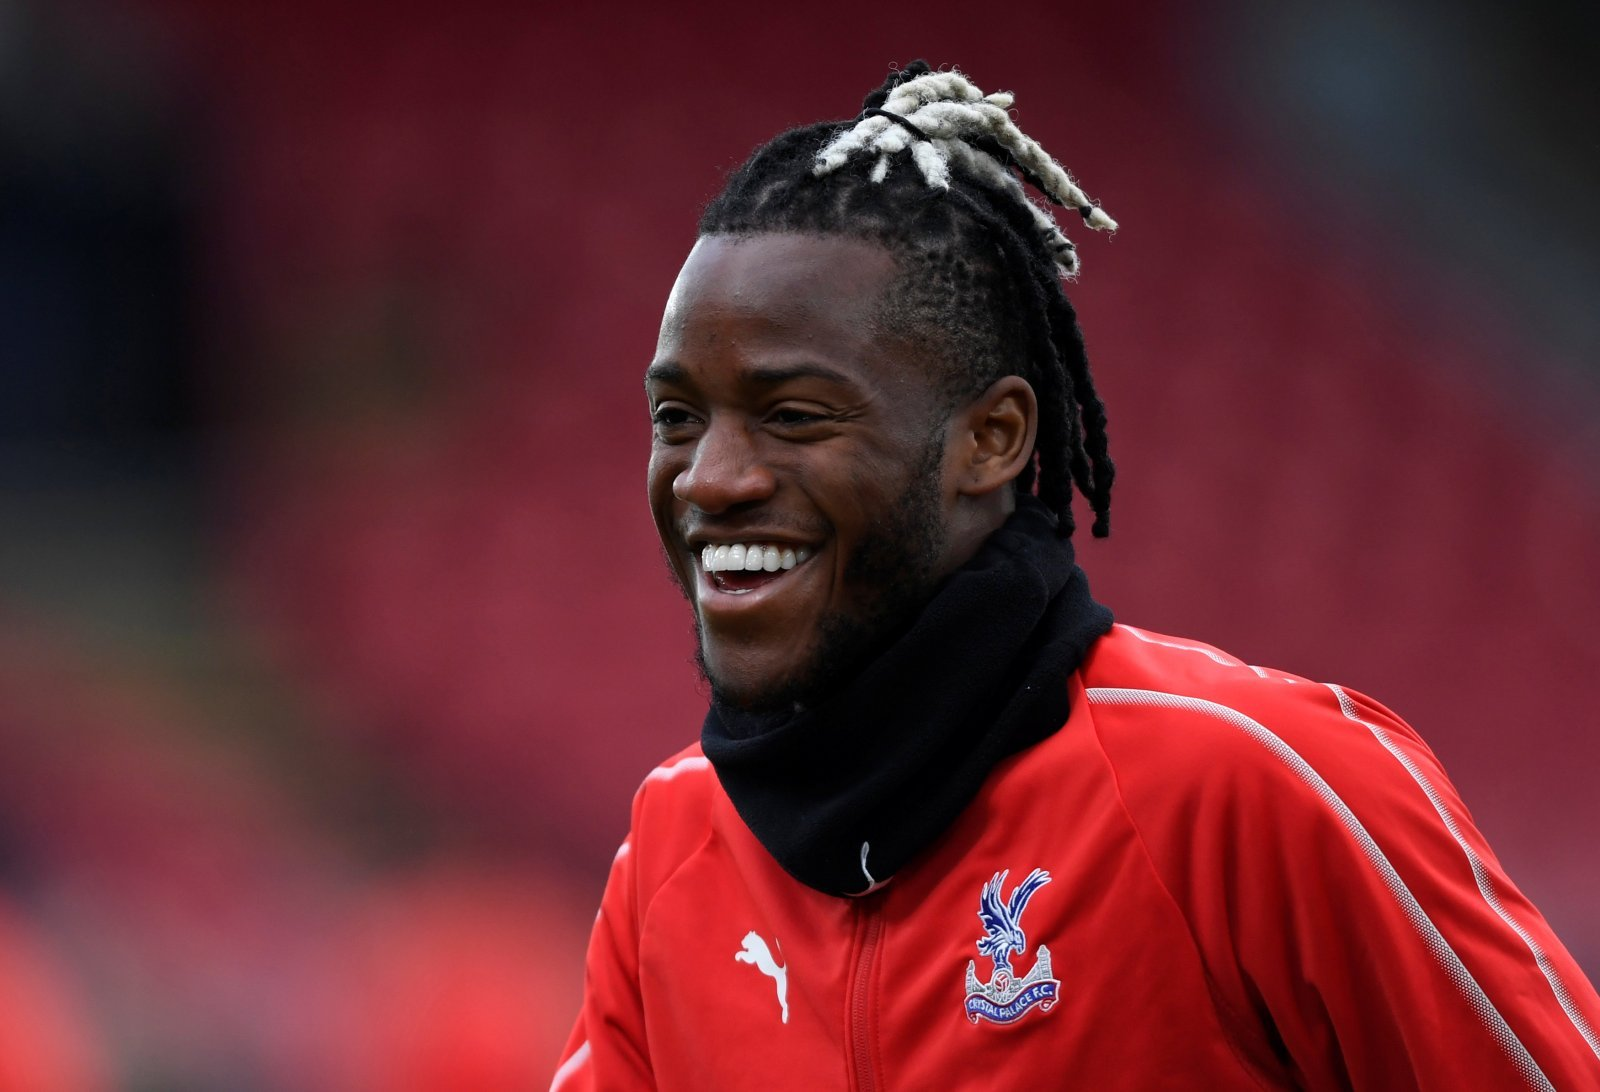 Crystal Palace fans loved Batshuayi's tweet about the Selhurst Park atmosphere